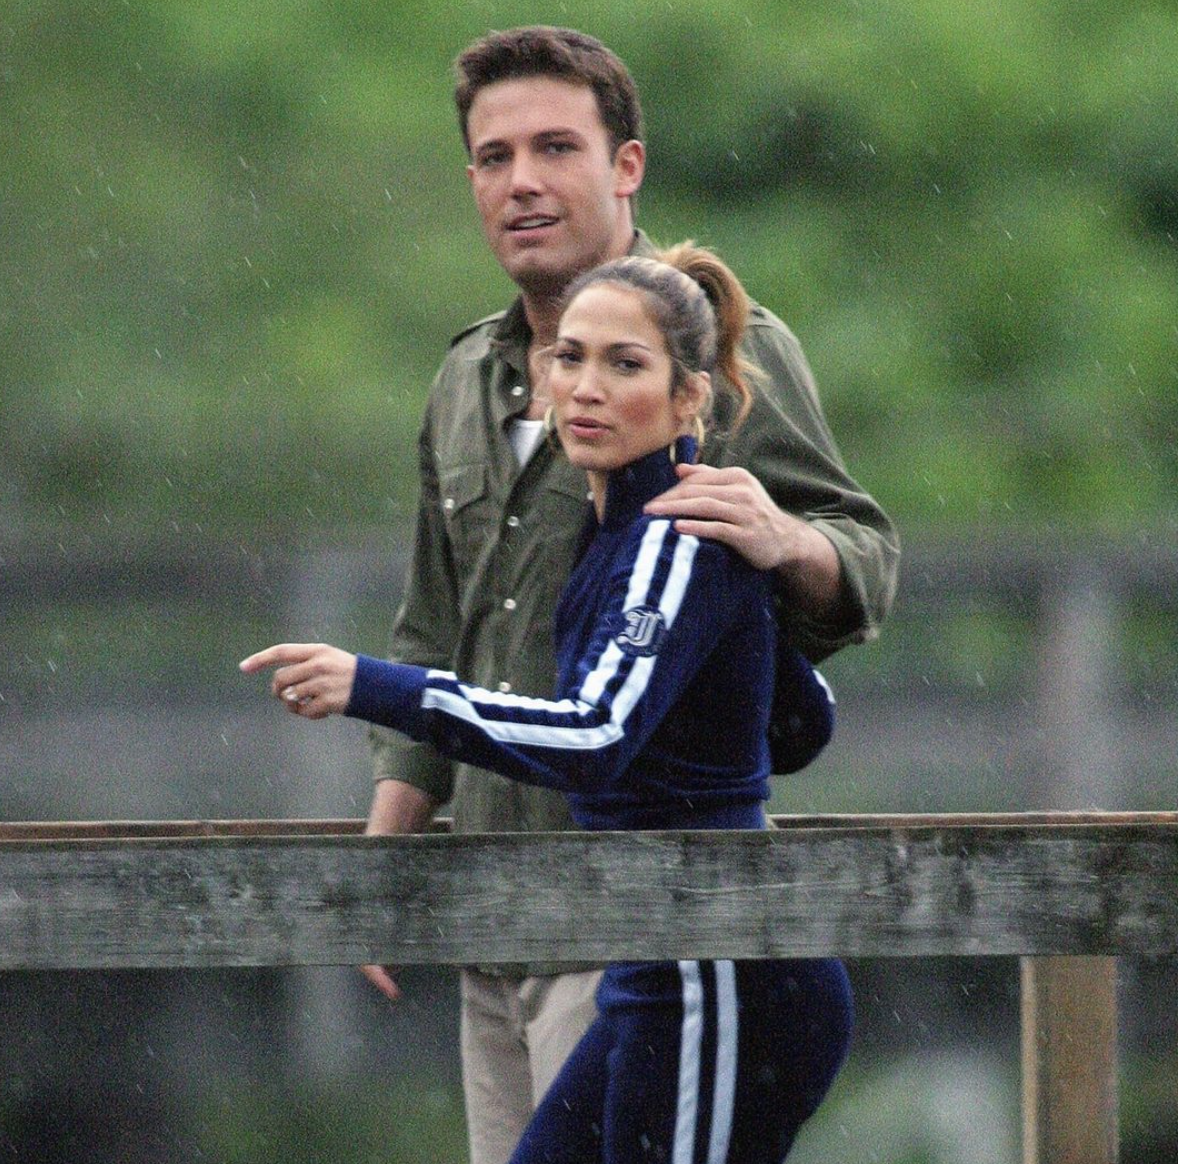 """""""jennifer-lopez-reveals-this-2002-album-dedicated-to-ben-affleck-is-her-favorite-ever-and-more-relevant-today-after-their-reunion"""""""